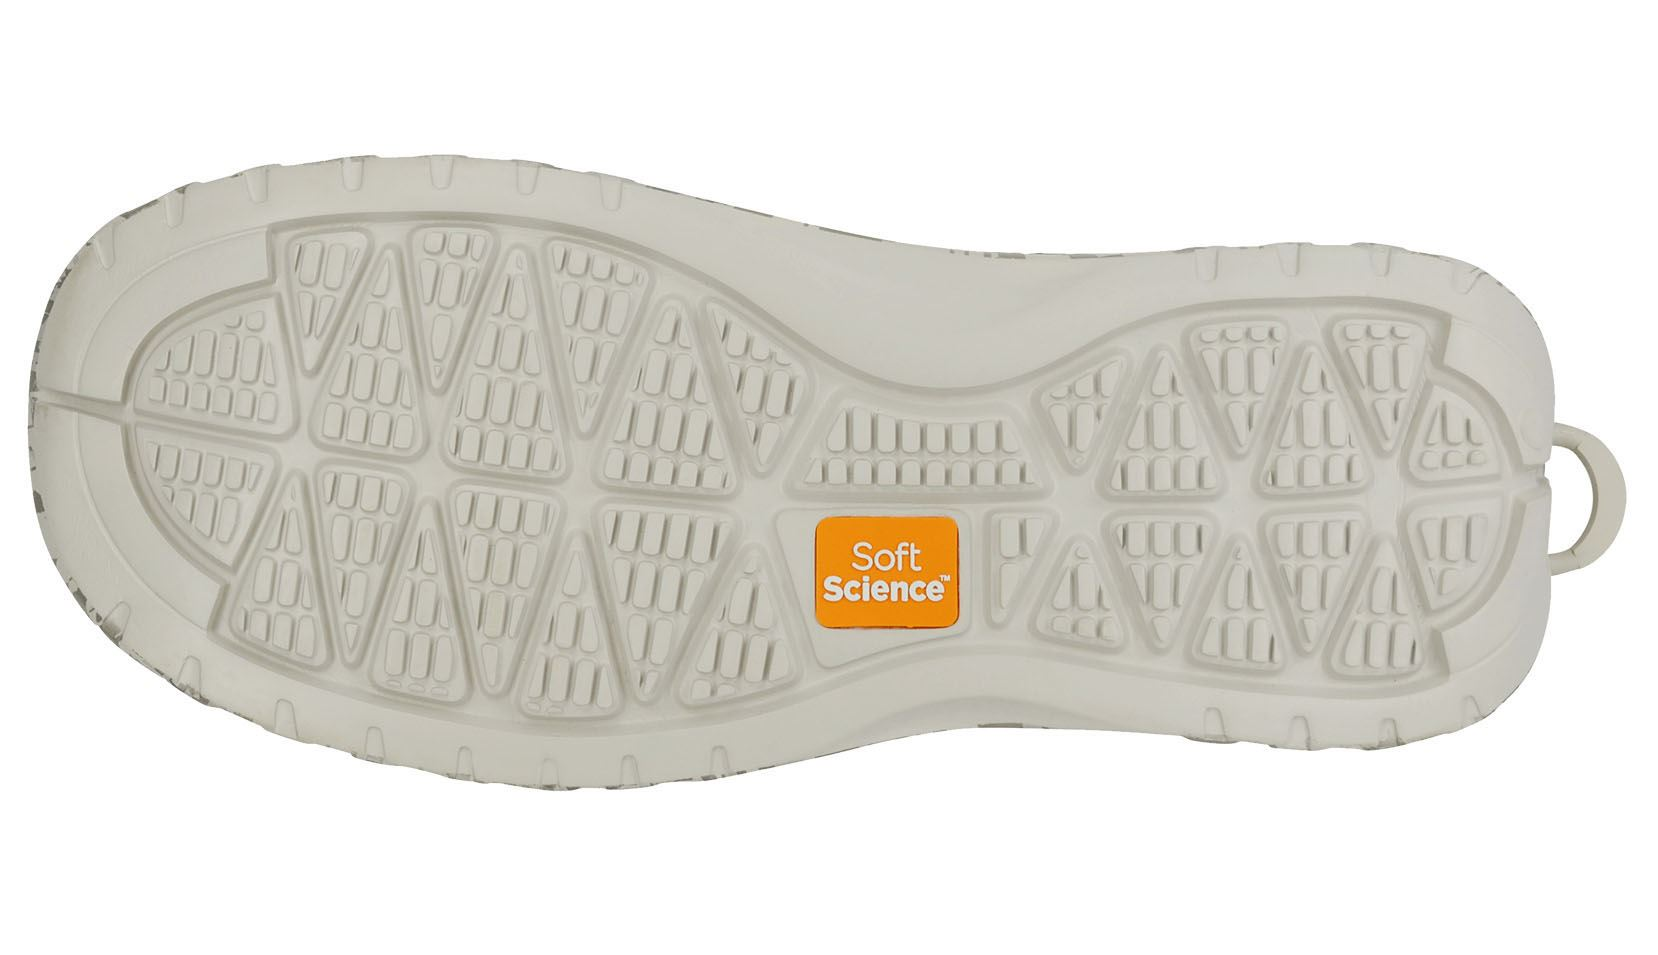 reputable site 6e020 1a4ba Details about Soft Science Comfort Footwear~Terrain Ultra Lyte  Boot~Canvas~Unisex~RRP£64